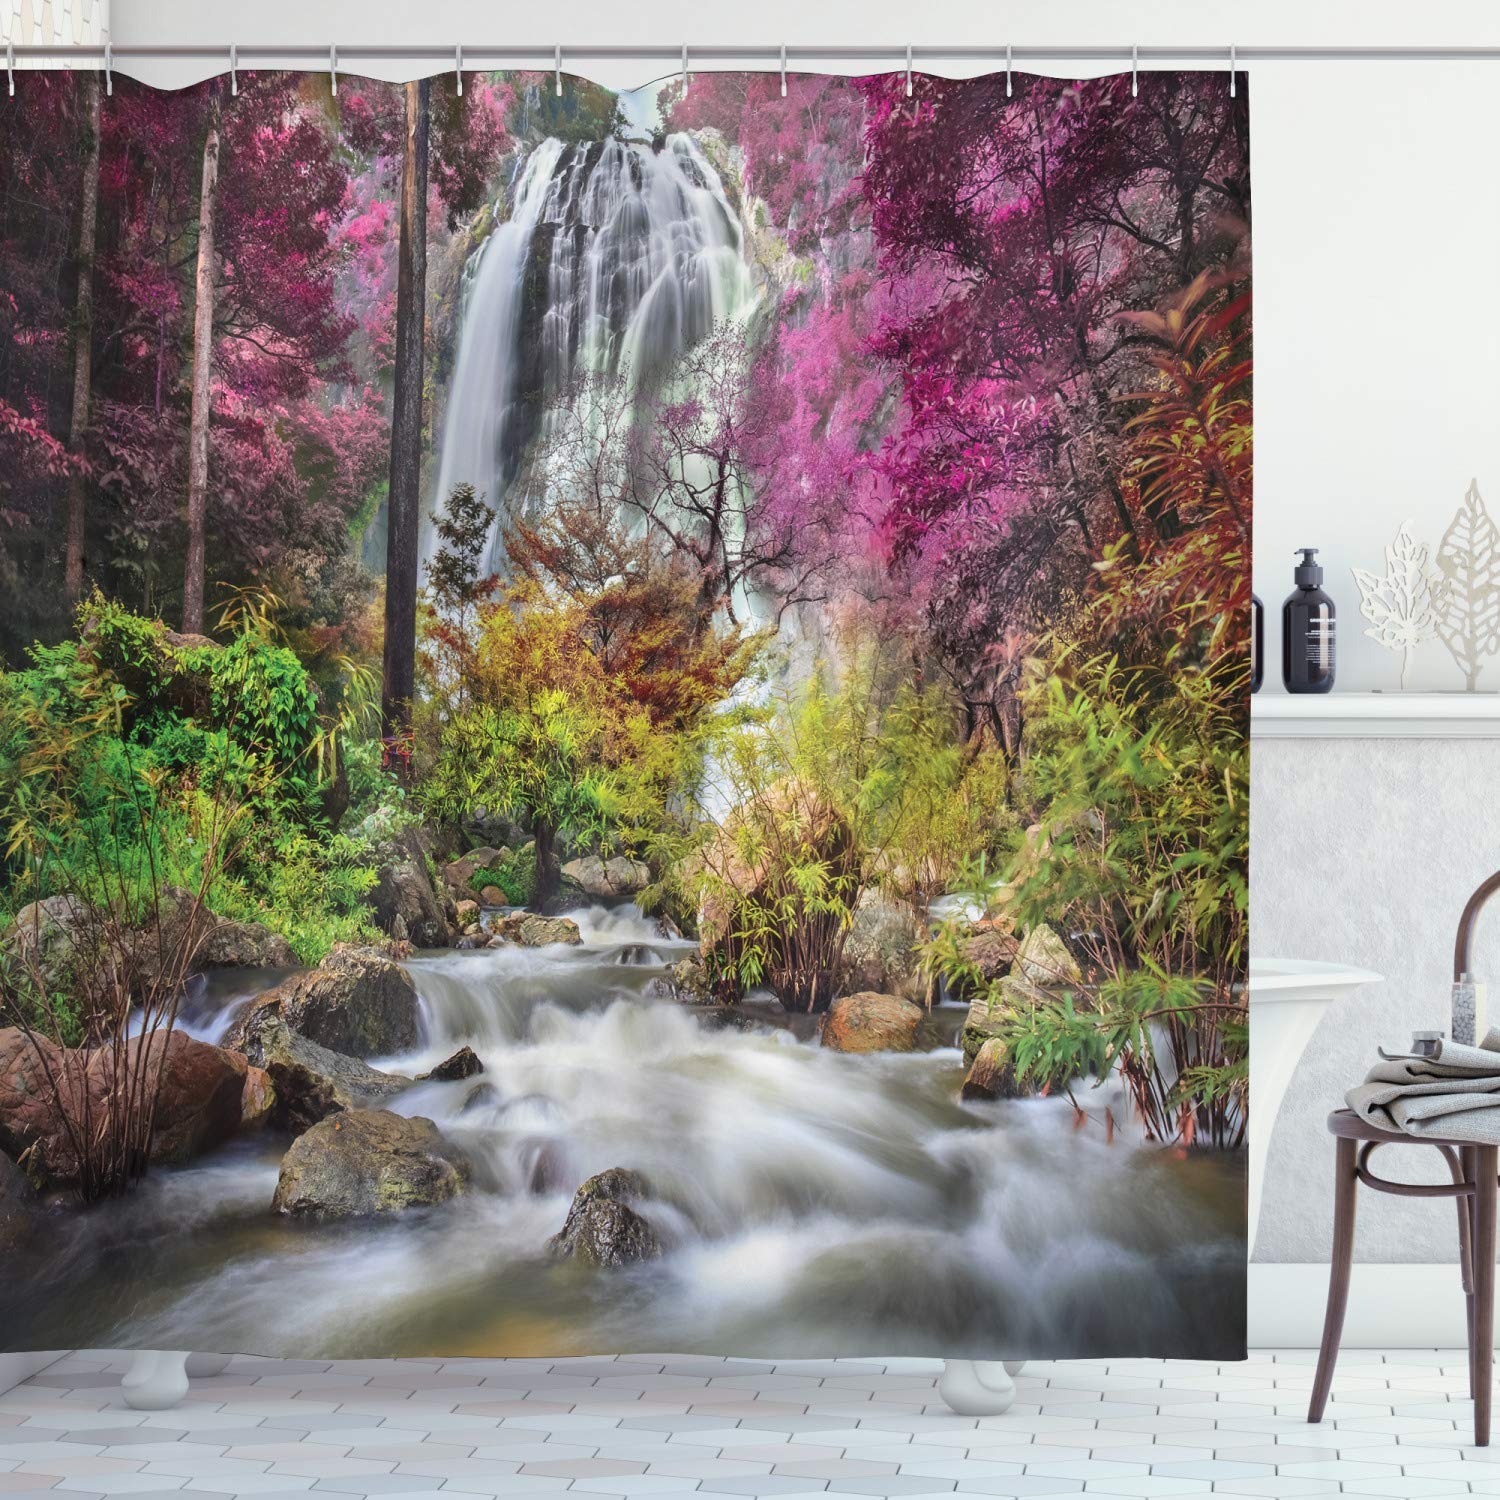 """Ambesonne Waterfall Shower Curtain, Waterfall in Colorful Forest Bushes Feigned Stream Trees Grass, Cloth Fabric Bathroom Decor Set with Hooks, 75"""" Long, Brown Magenta"""